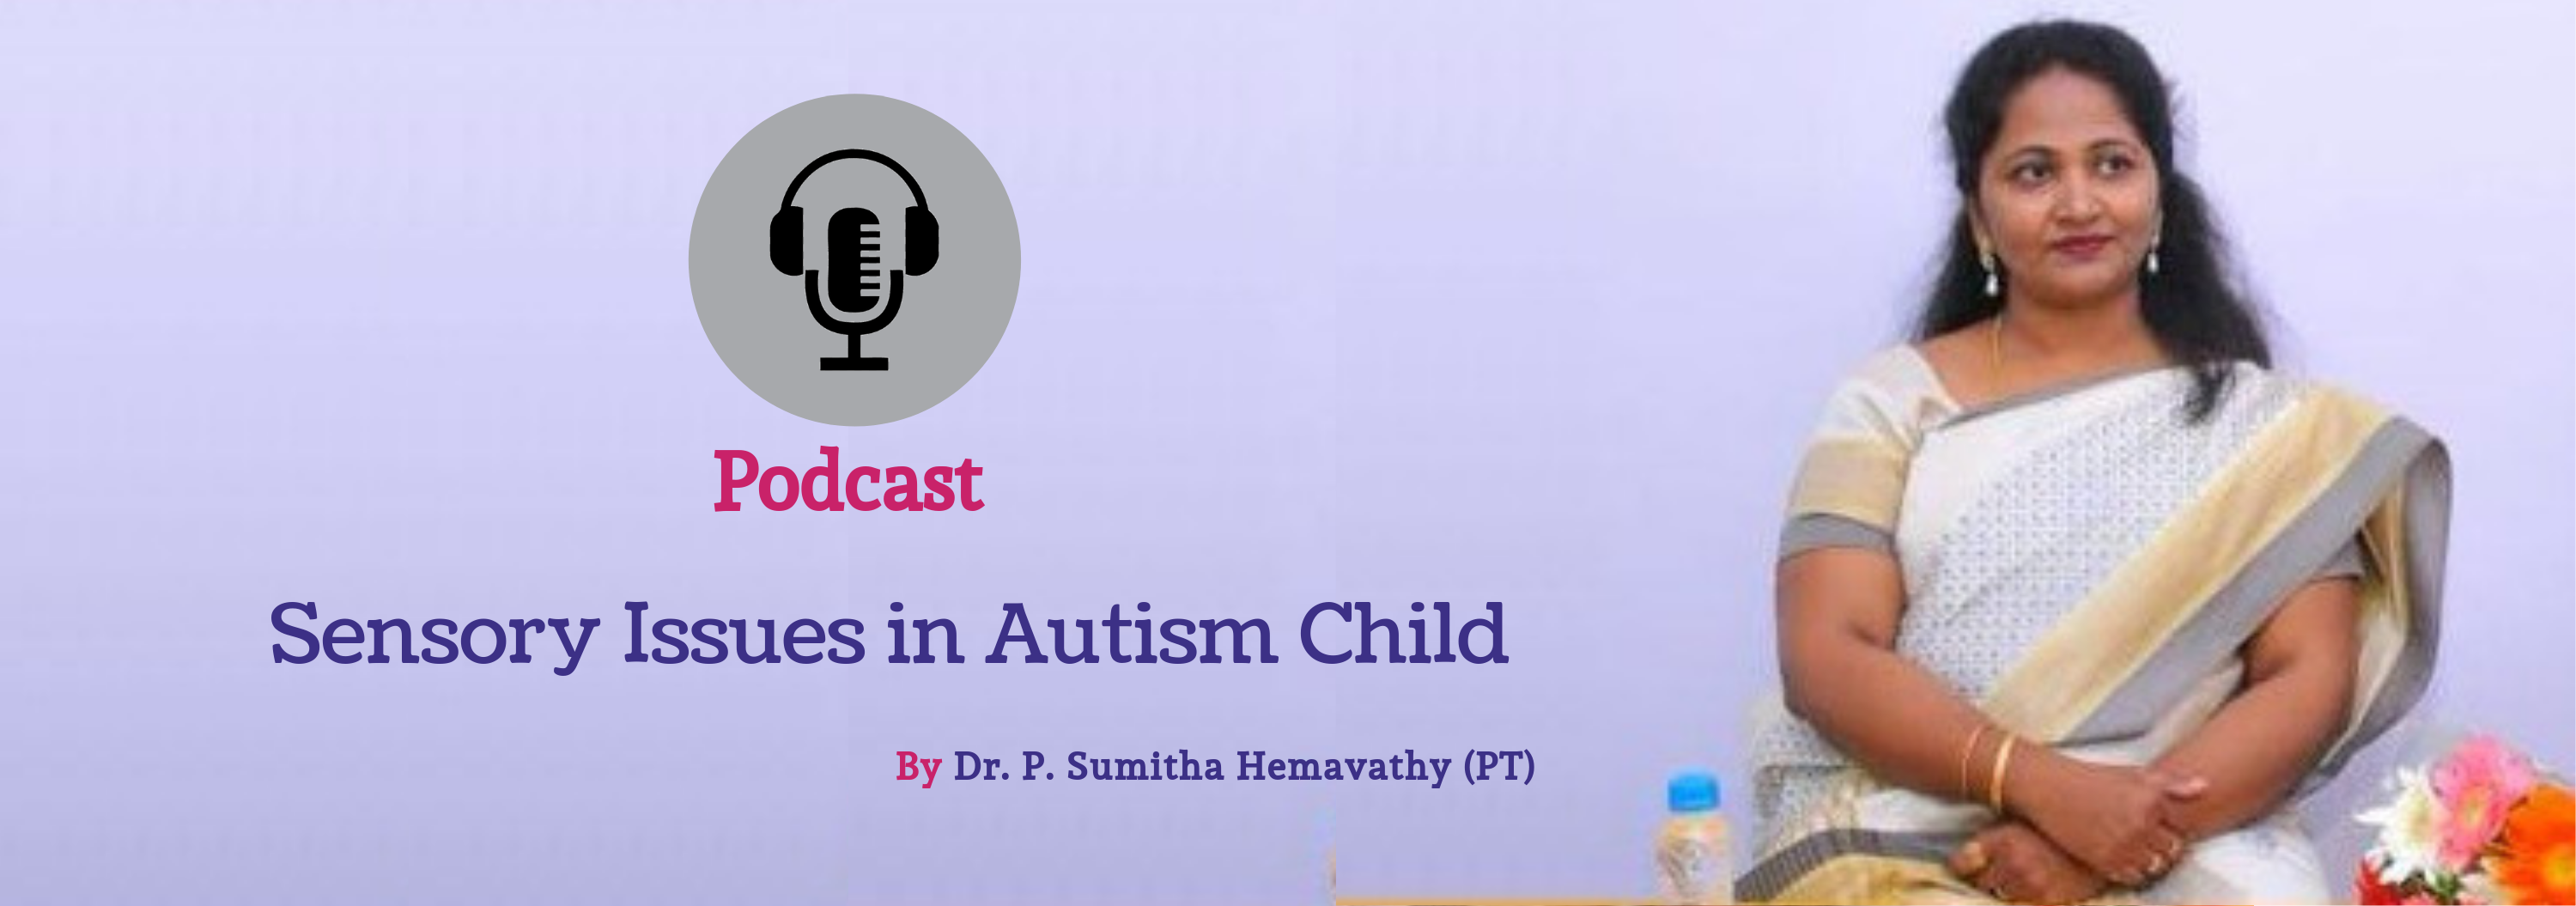 Sensory Issues in Autism Child